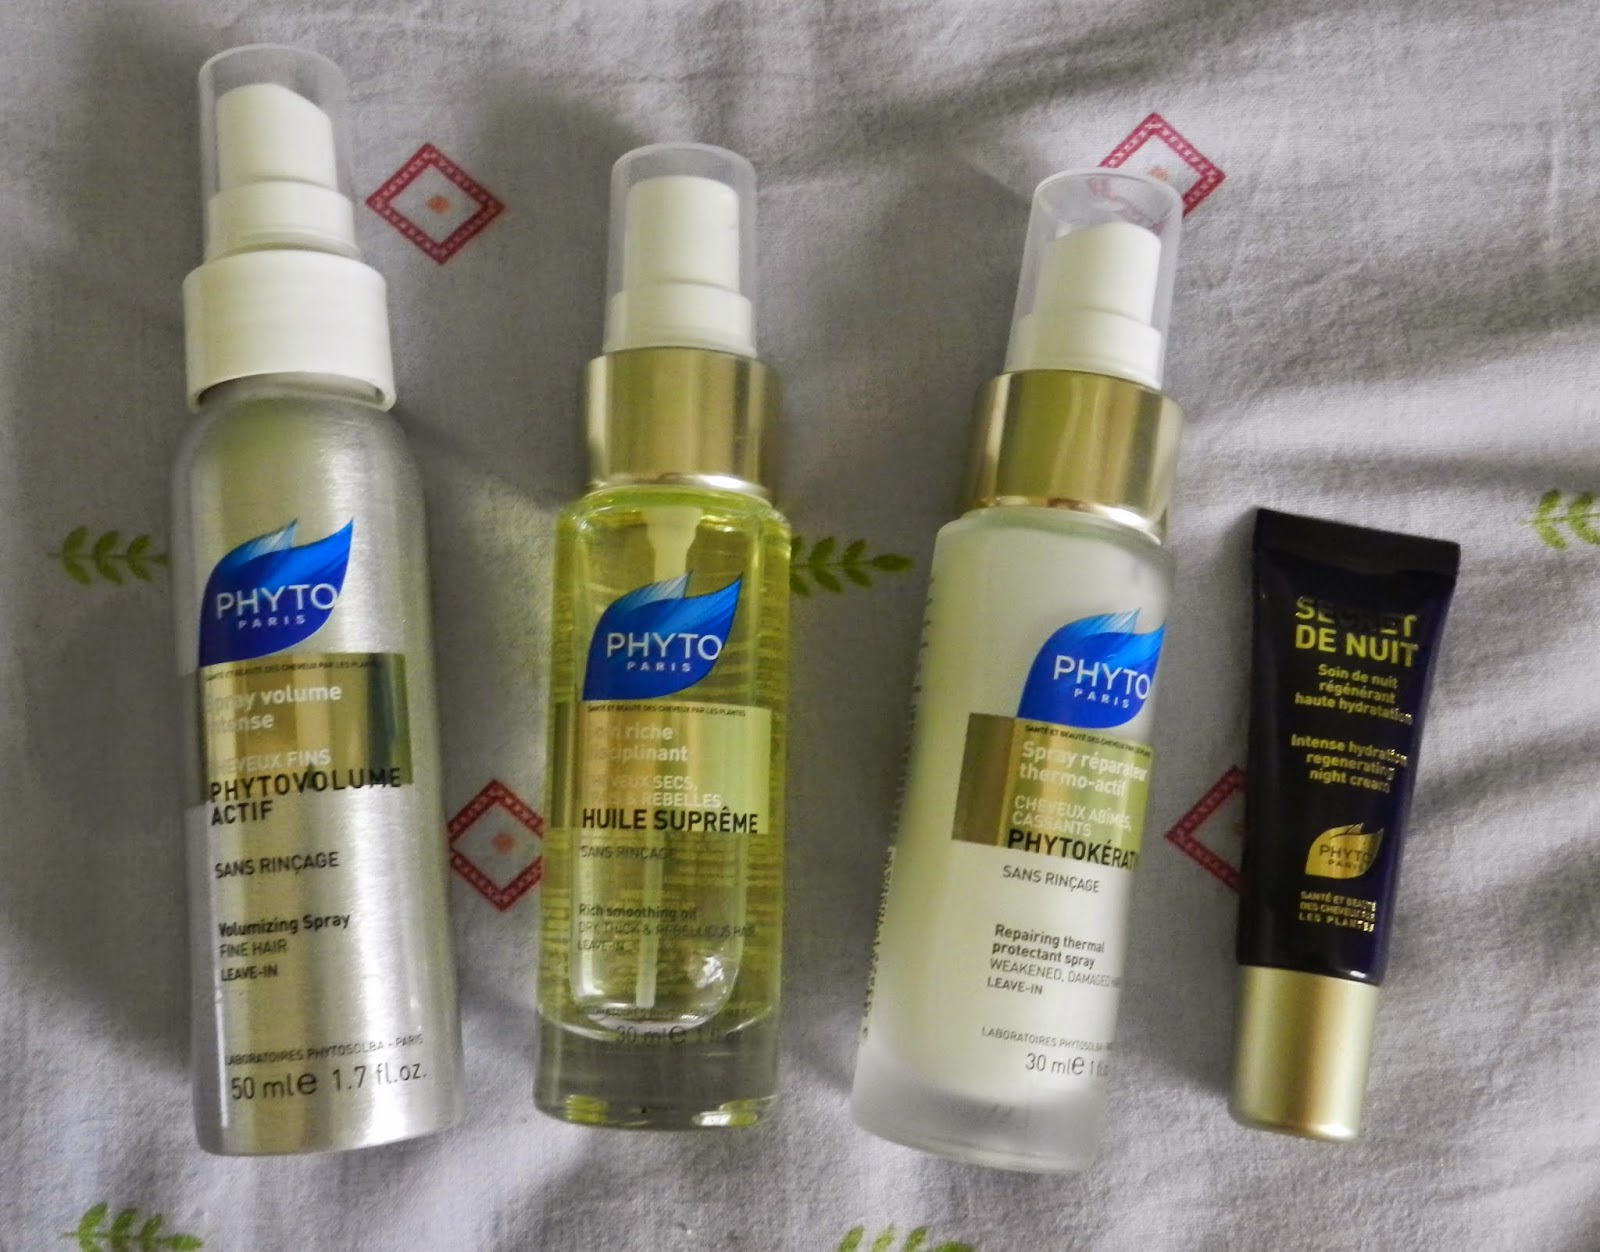 PhytoParis volume spray, huile supreme, phytokeratin & night cream